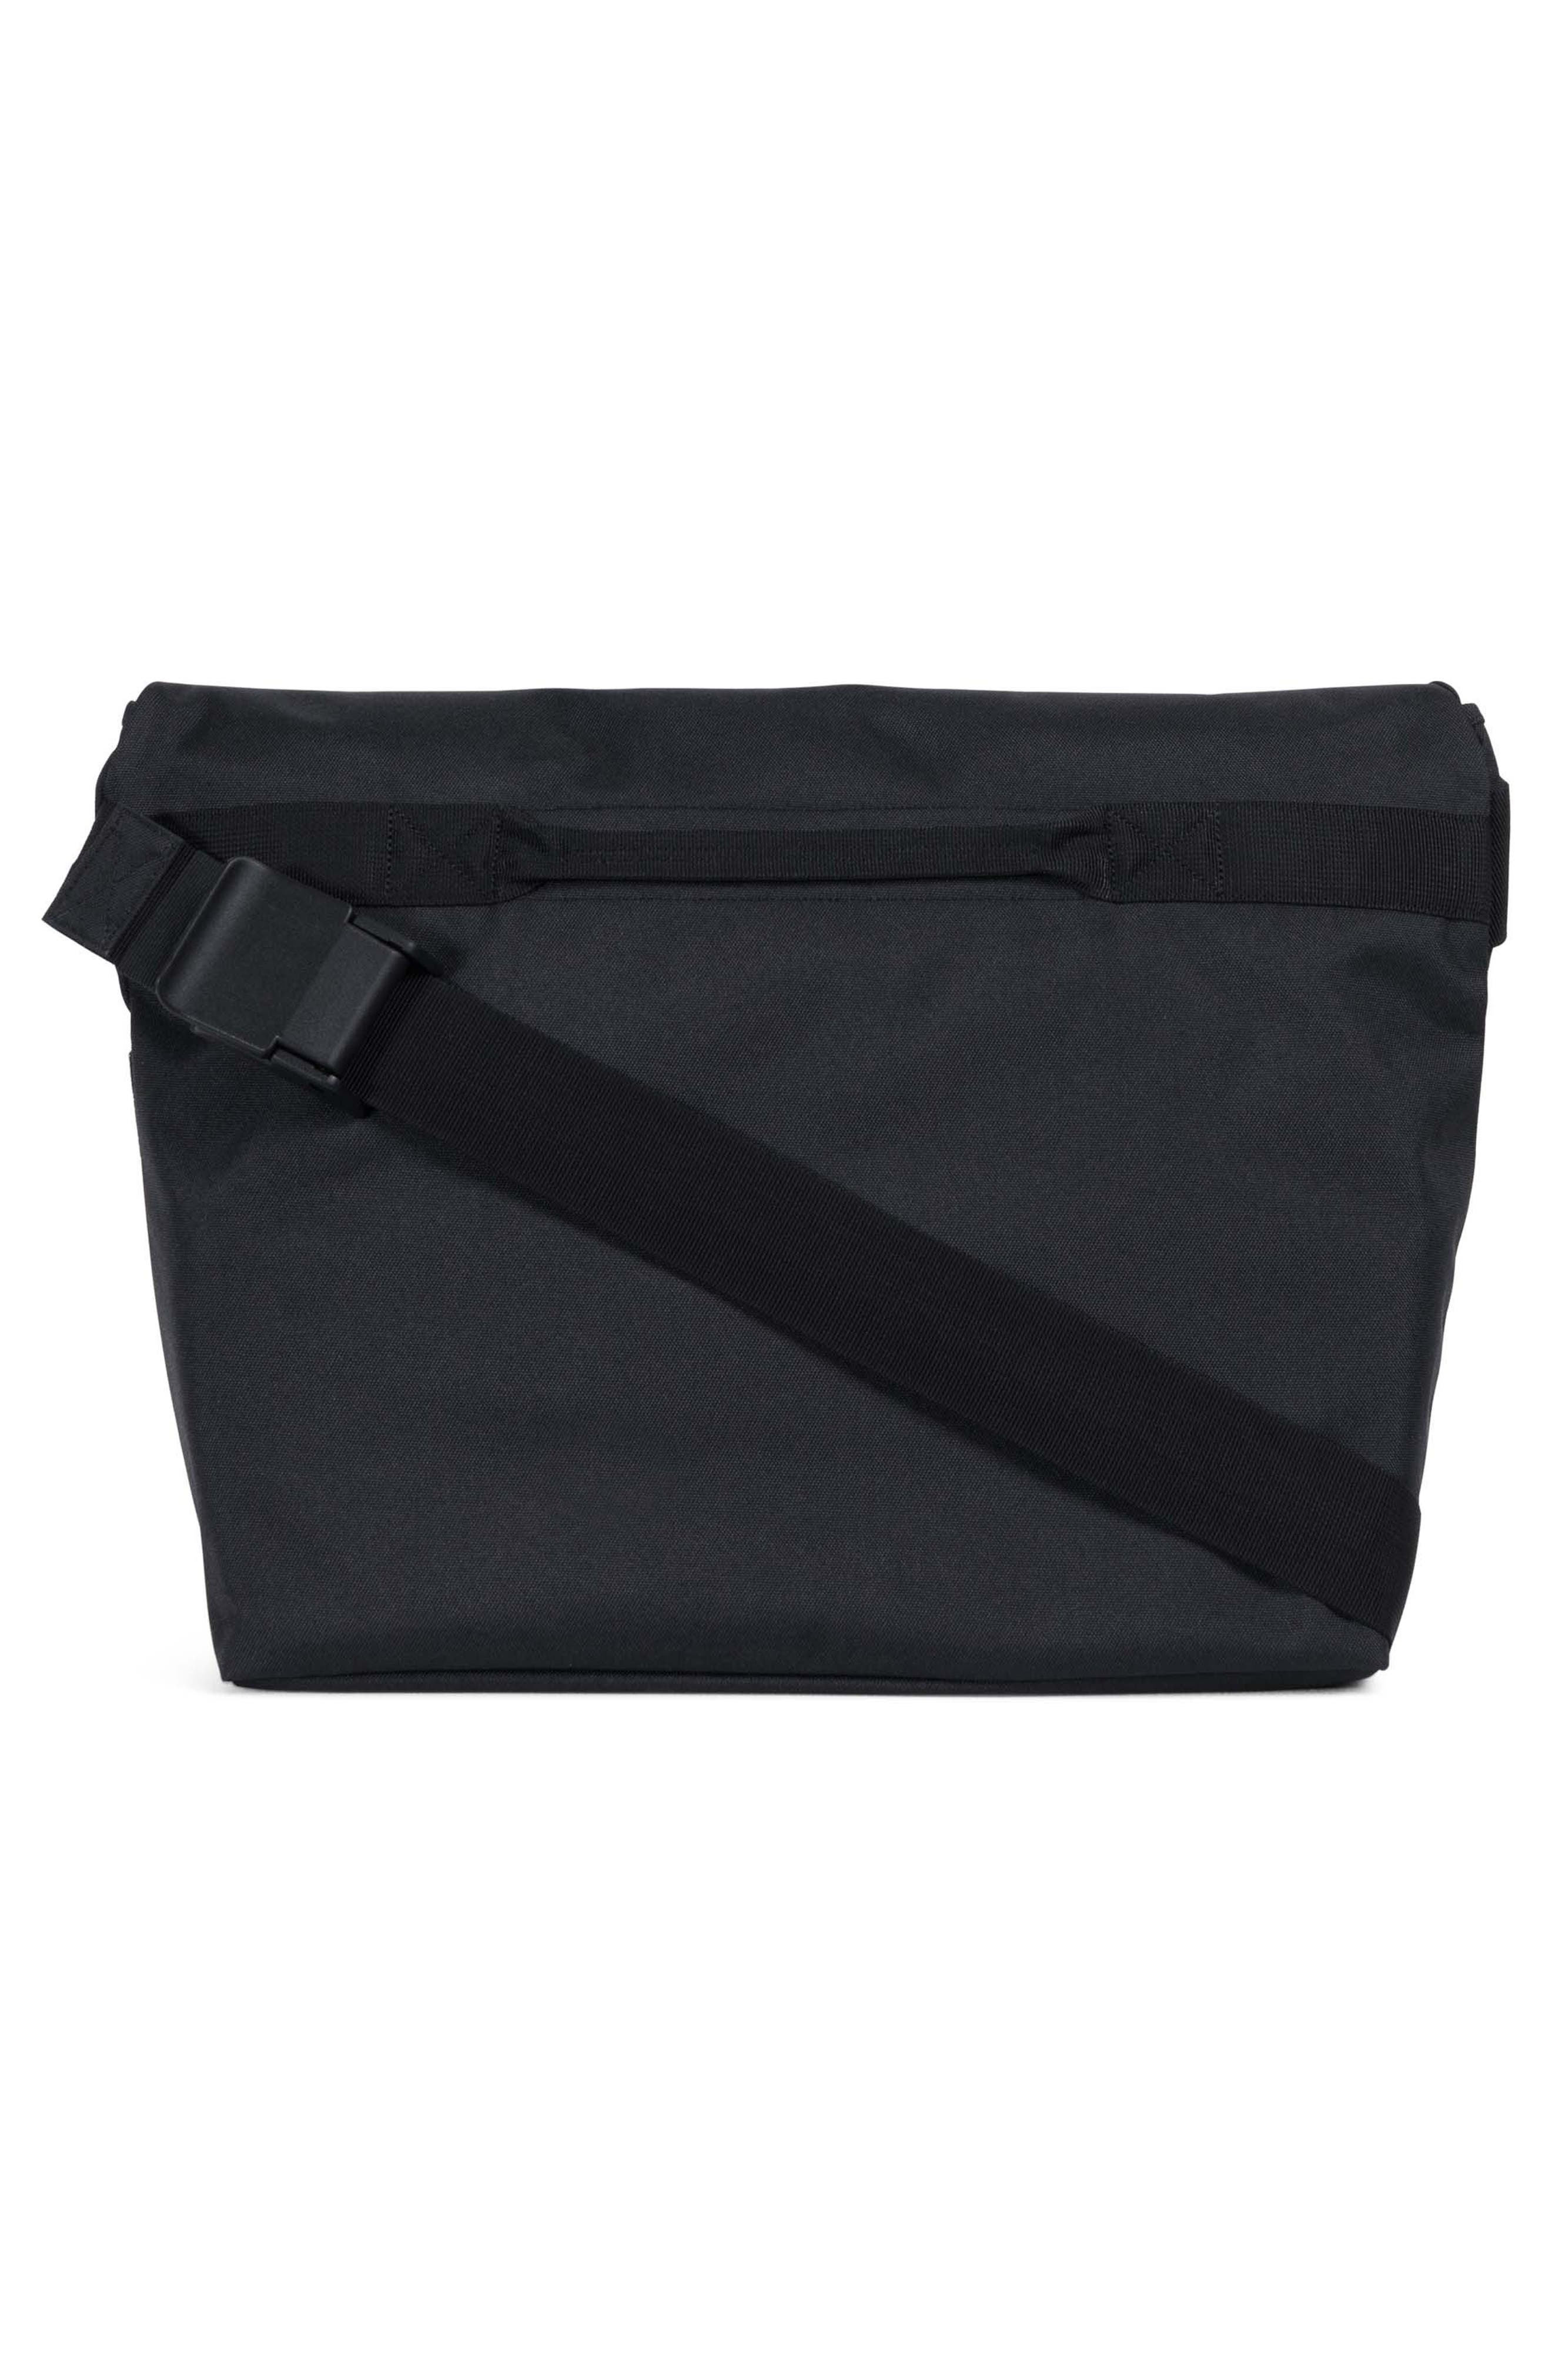 Odell Messenger Bag,                             Alternate thumbnail 2, color,                             Black